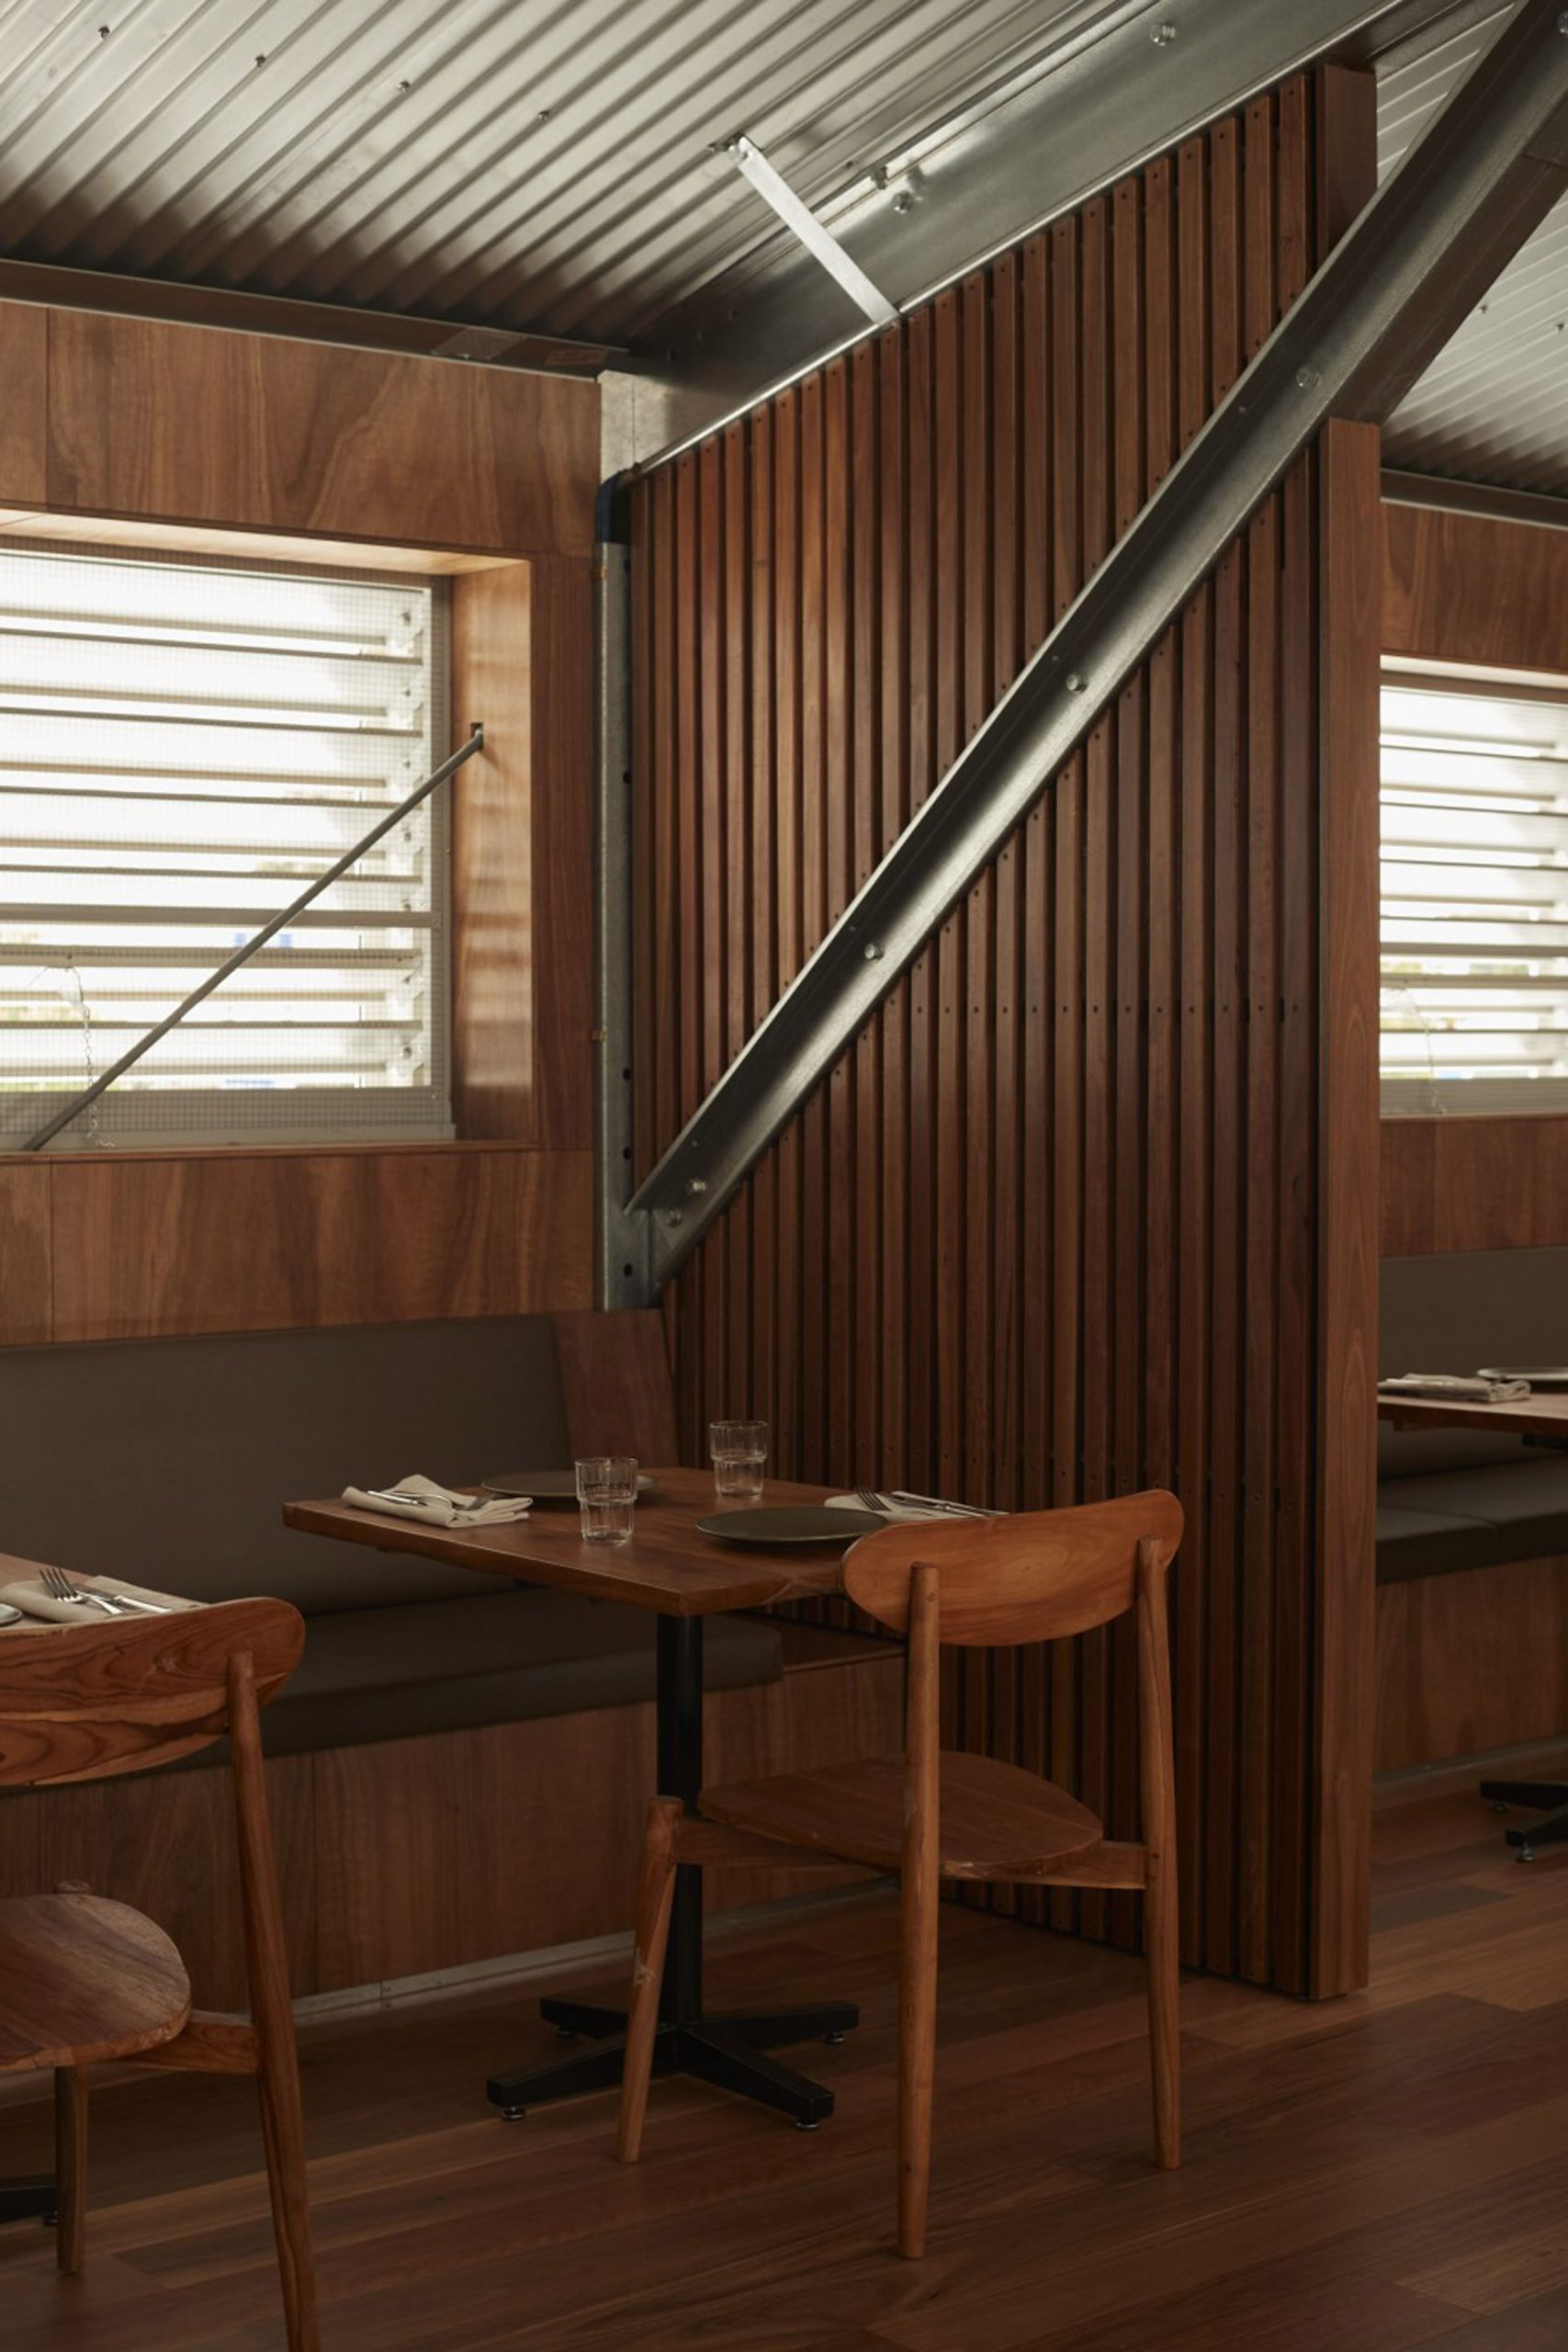 Bench seating and corrugated steel ceiling in Three Blue Ducks restaurant in Melbourne Urbnsurf